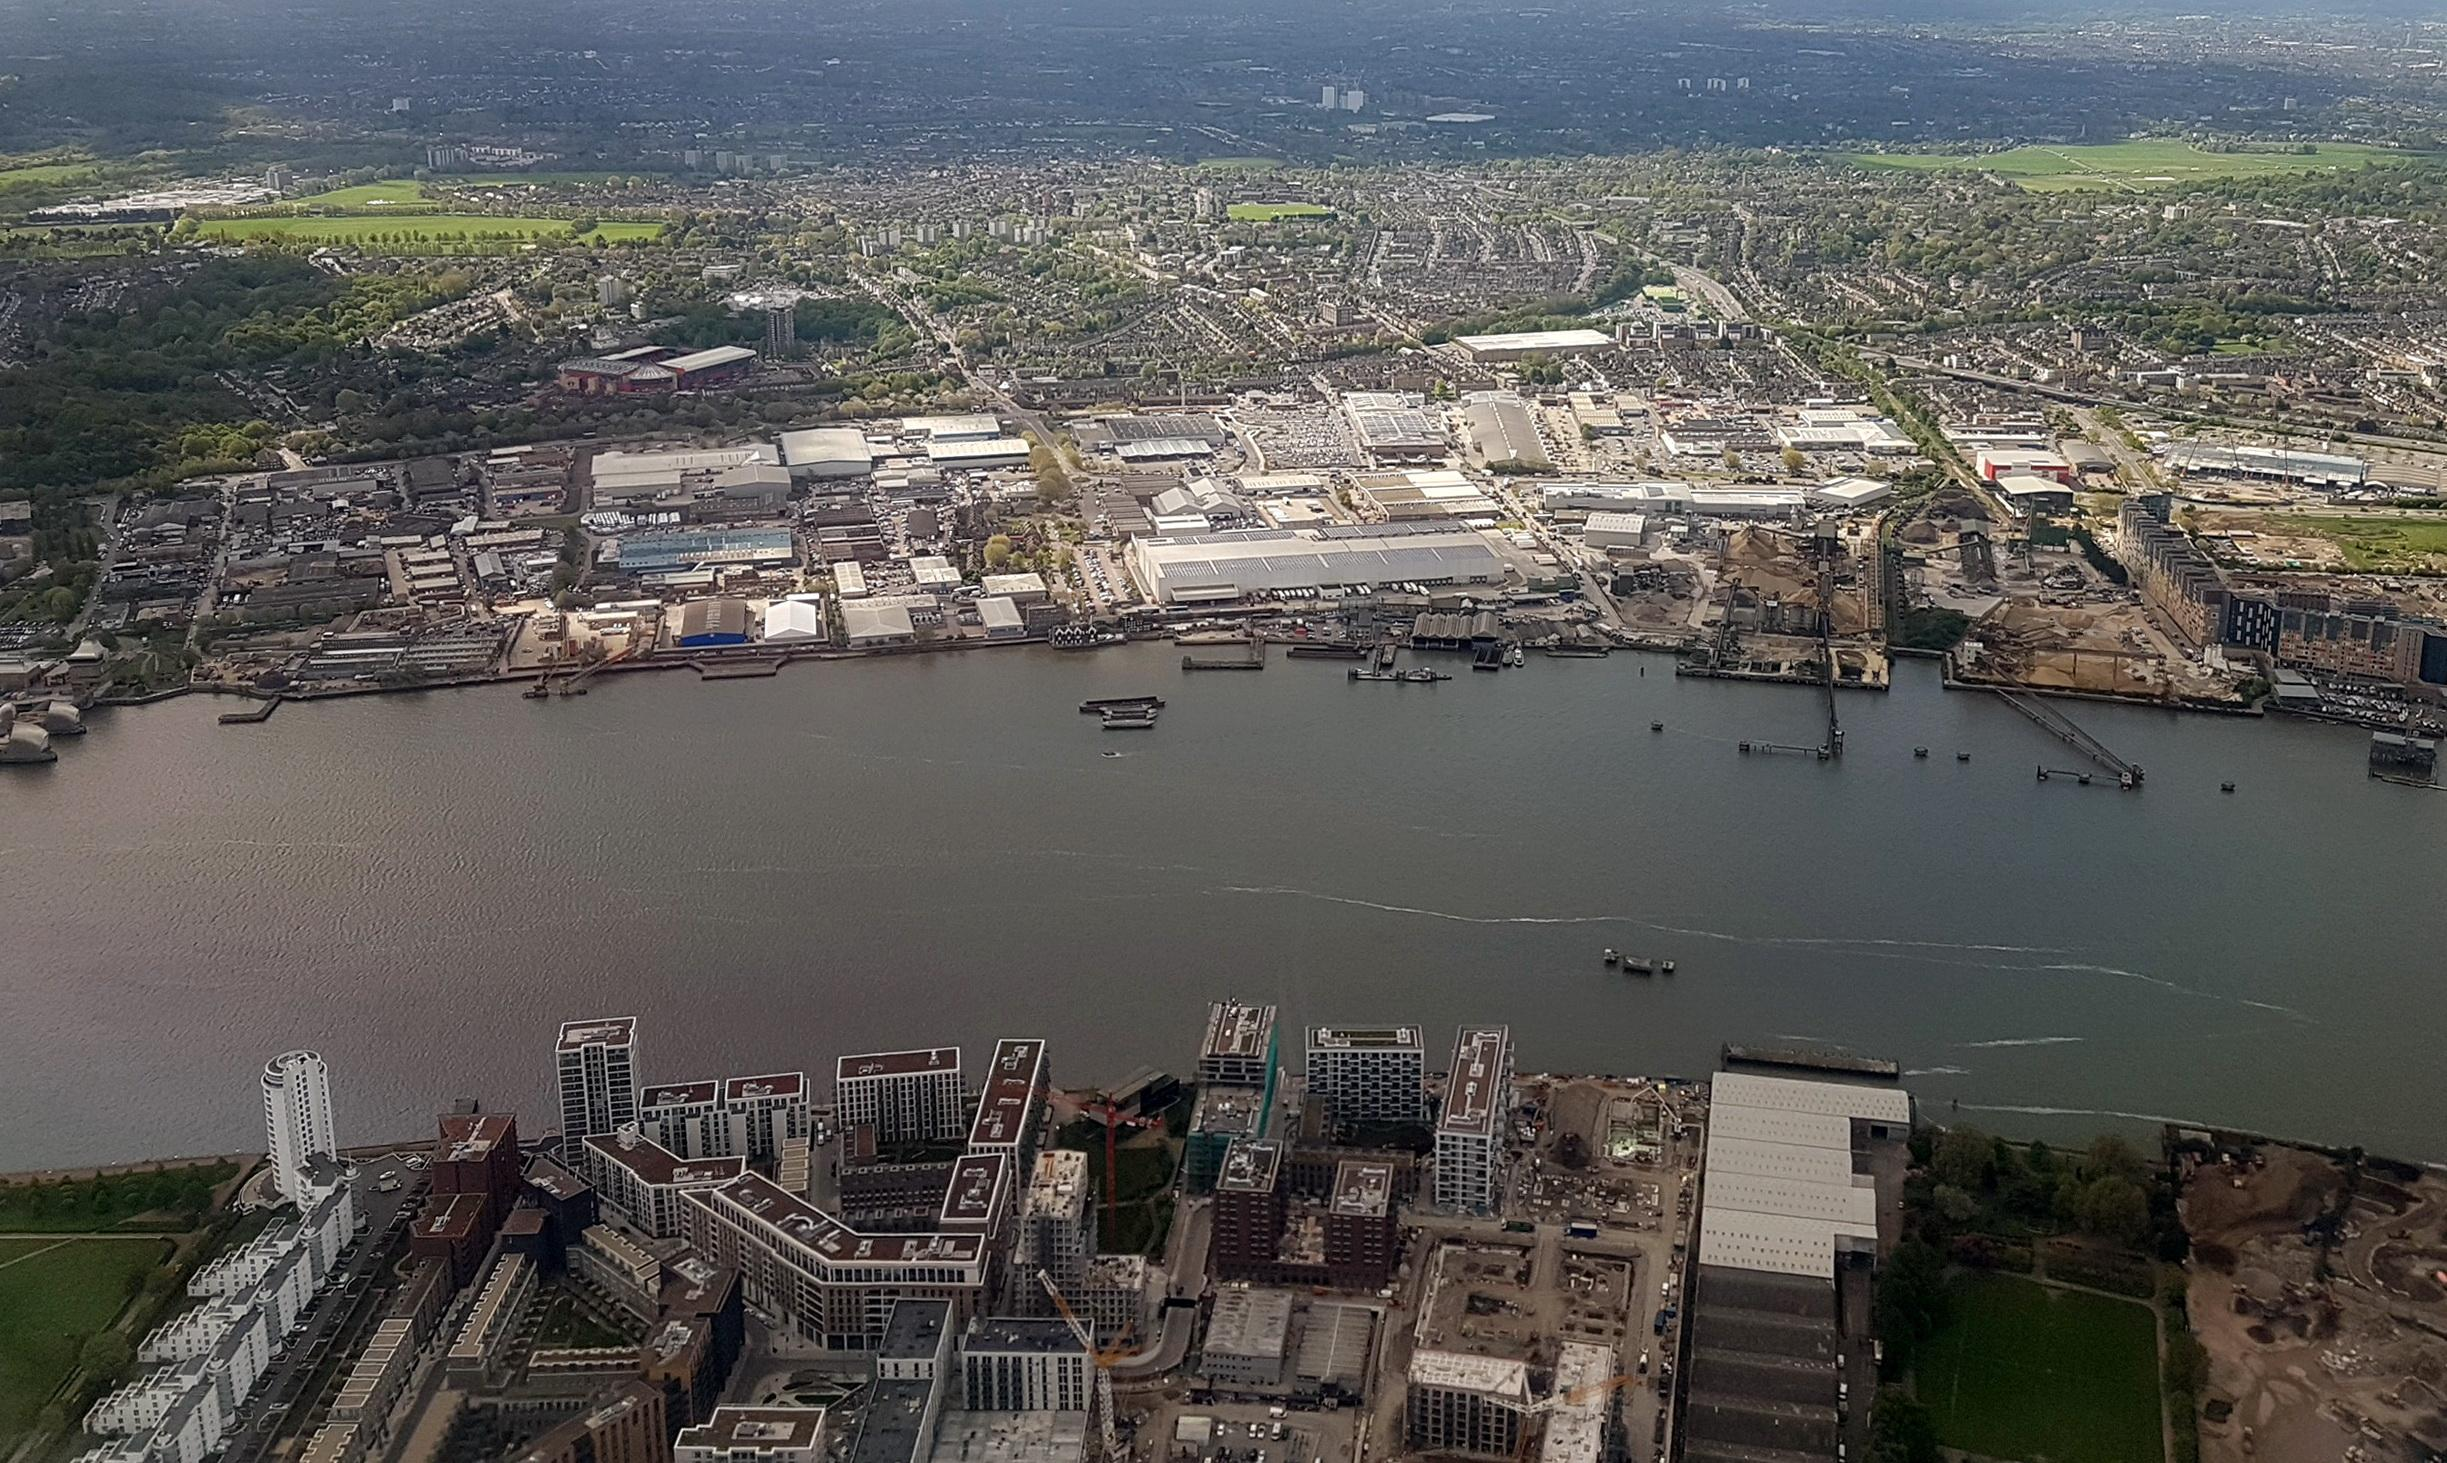 PTSG works at new waterside town in London